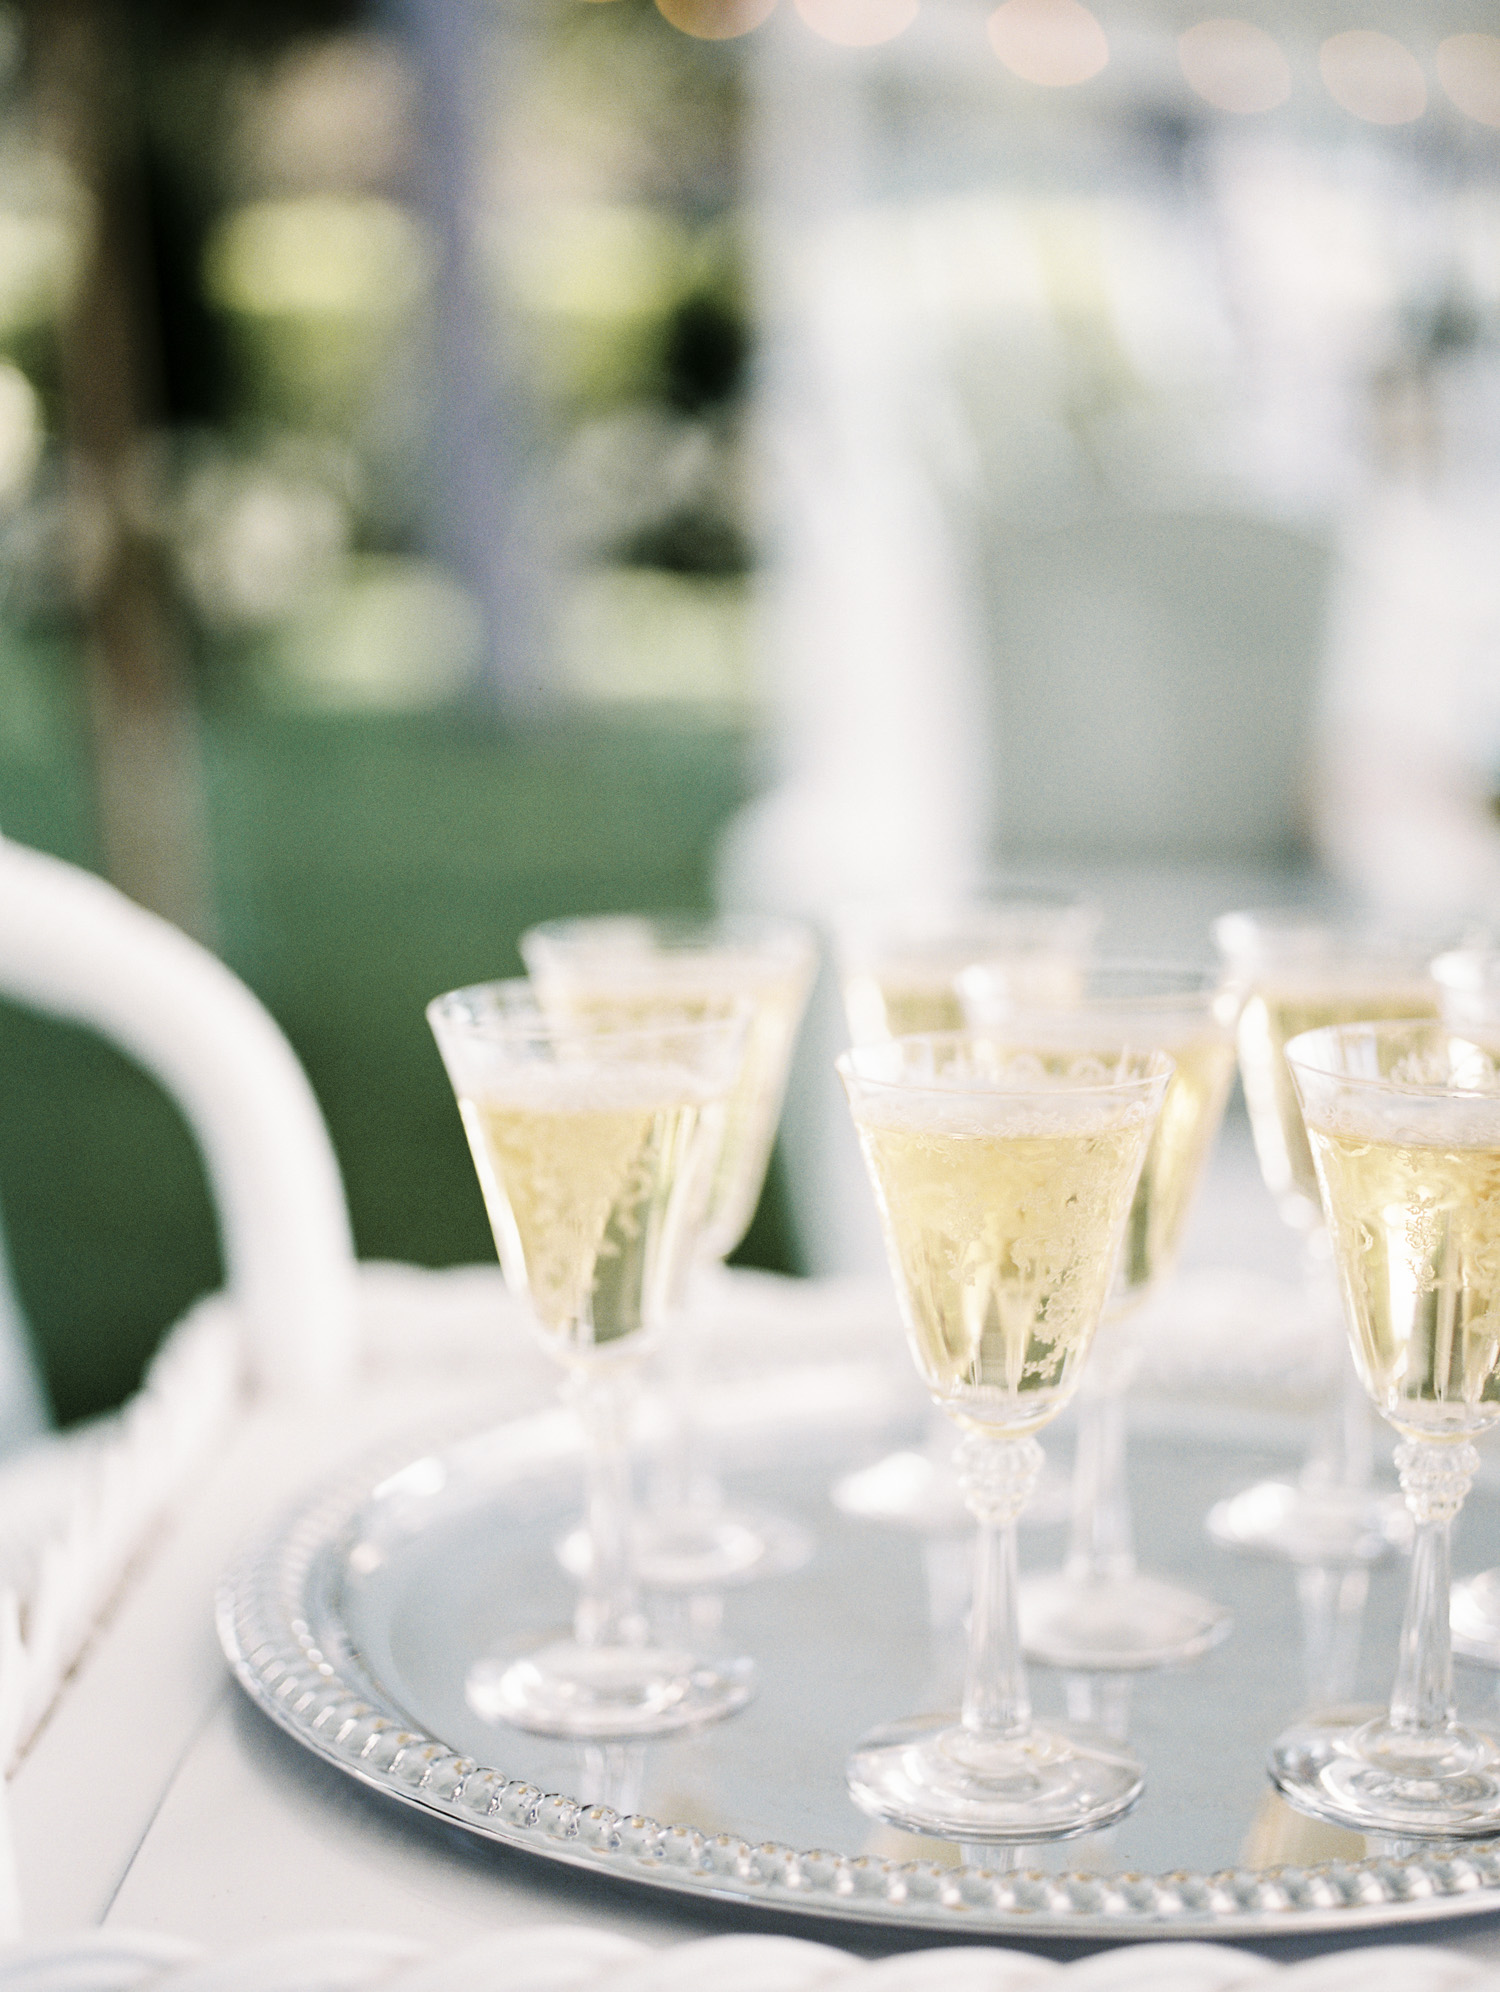 Vintage etched glassware is filled with champagne for a wedding toast in Petoskey, Michigan